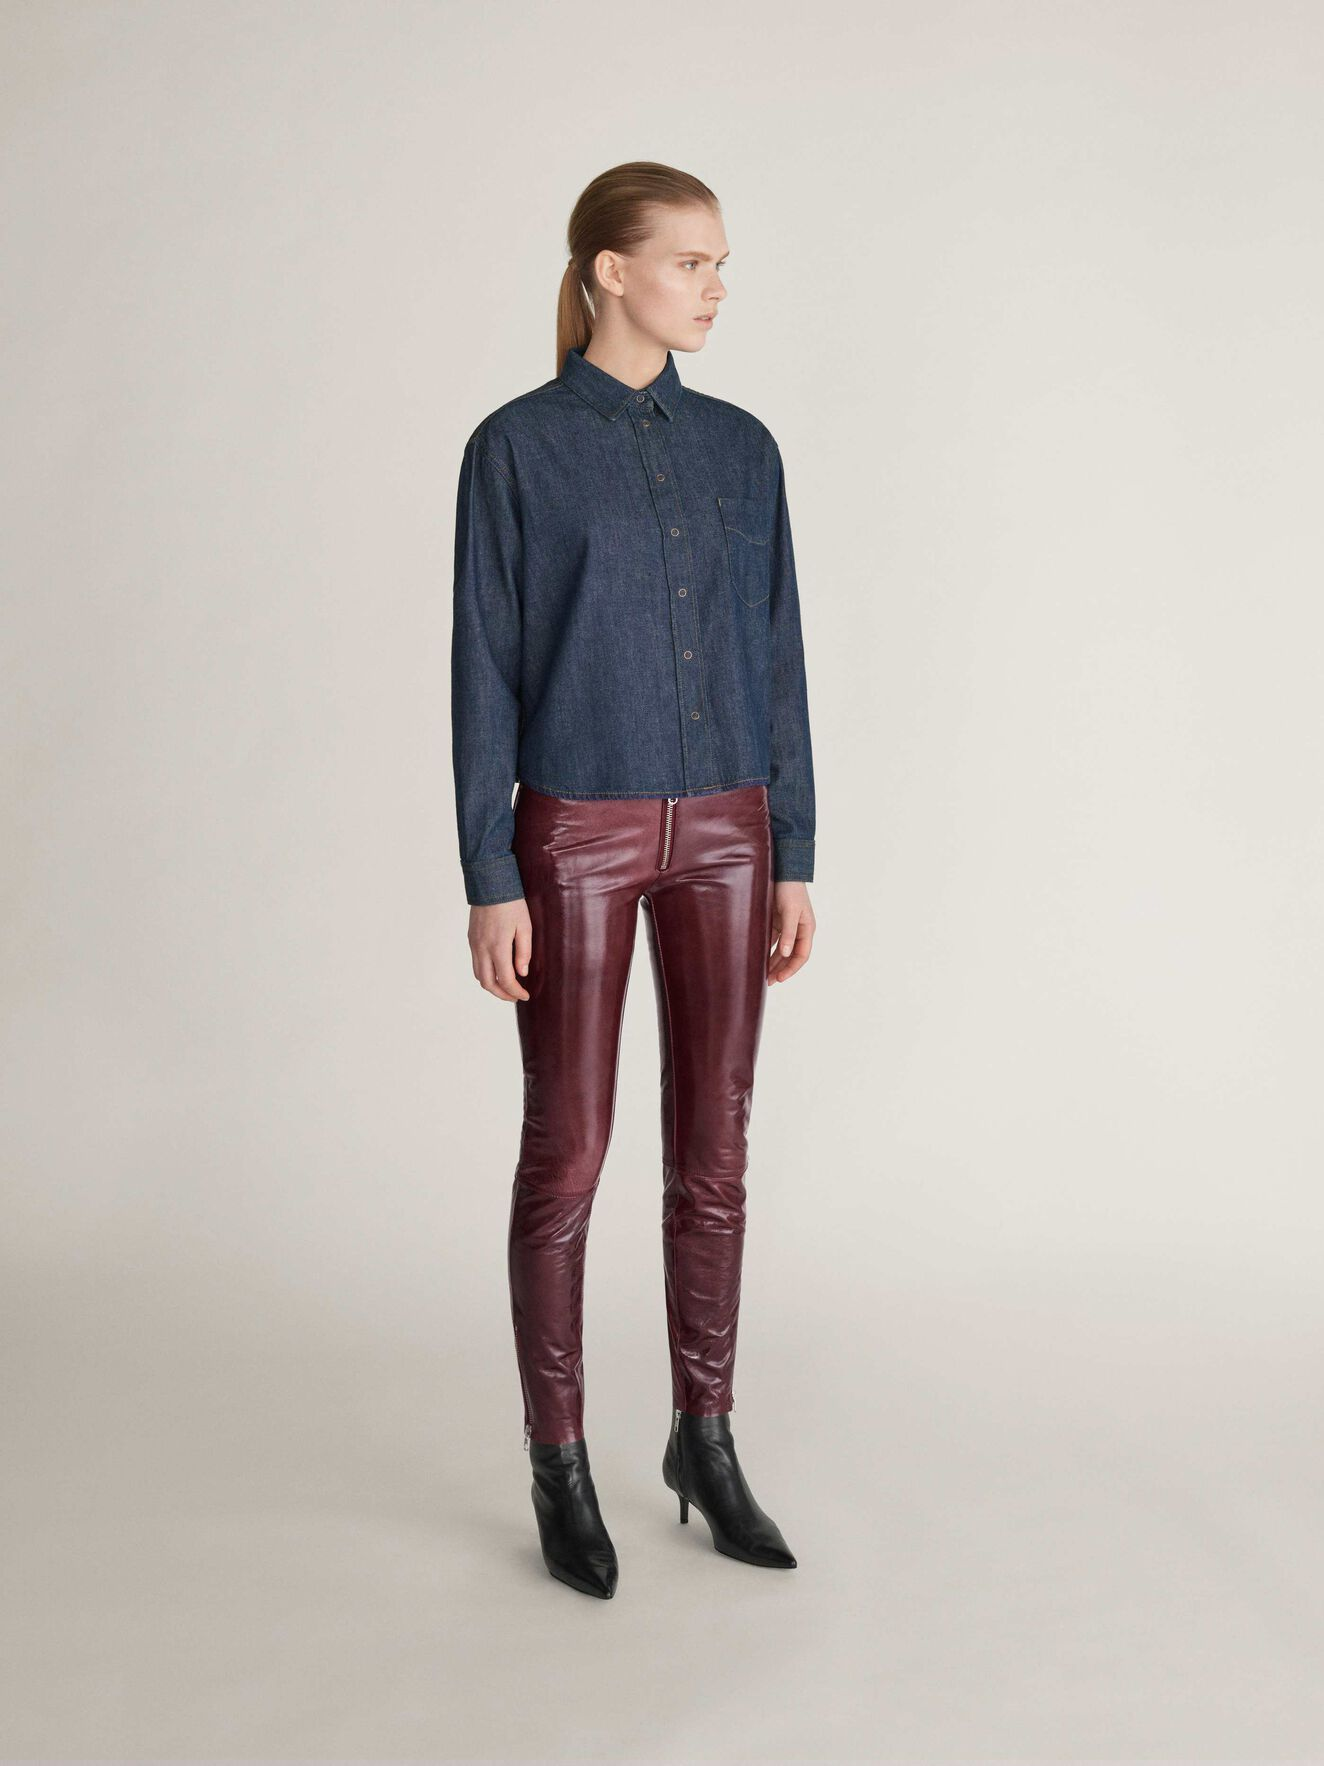 Zandra Trousers  in Cabernet from Tiger of Sweden